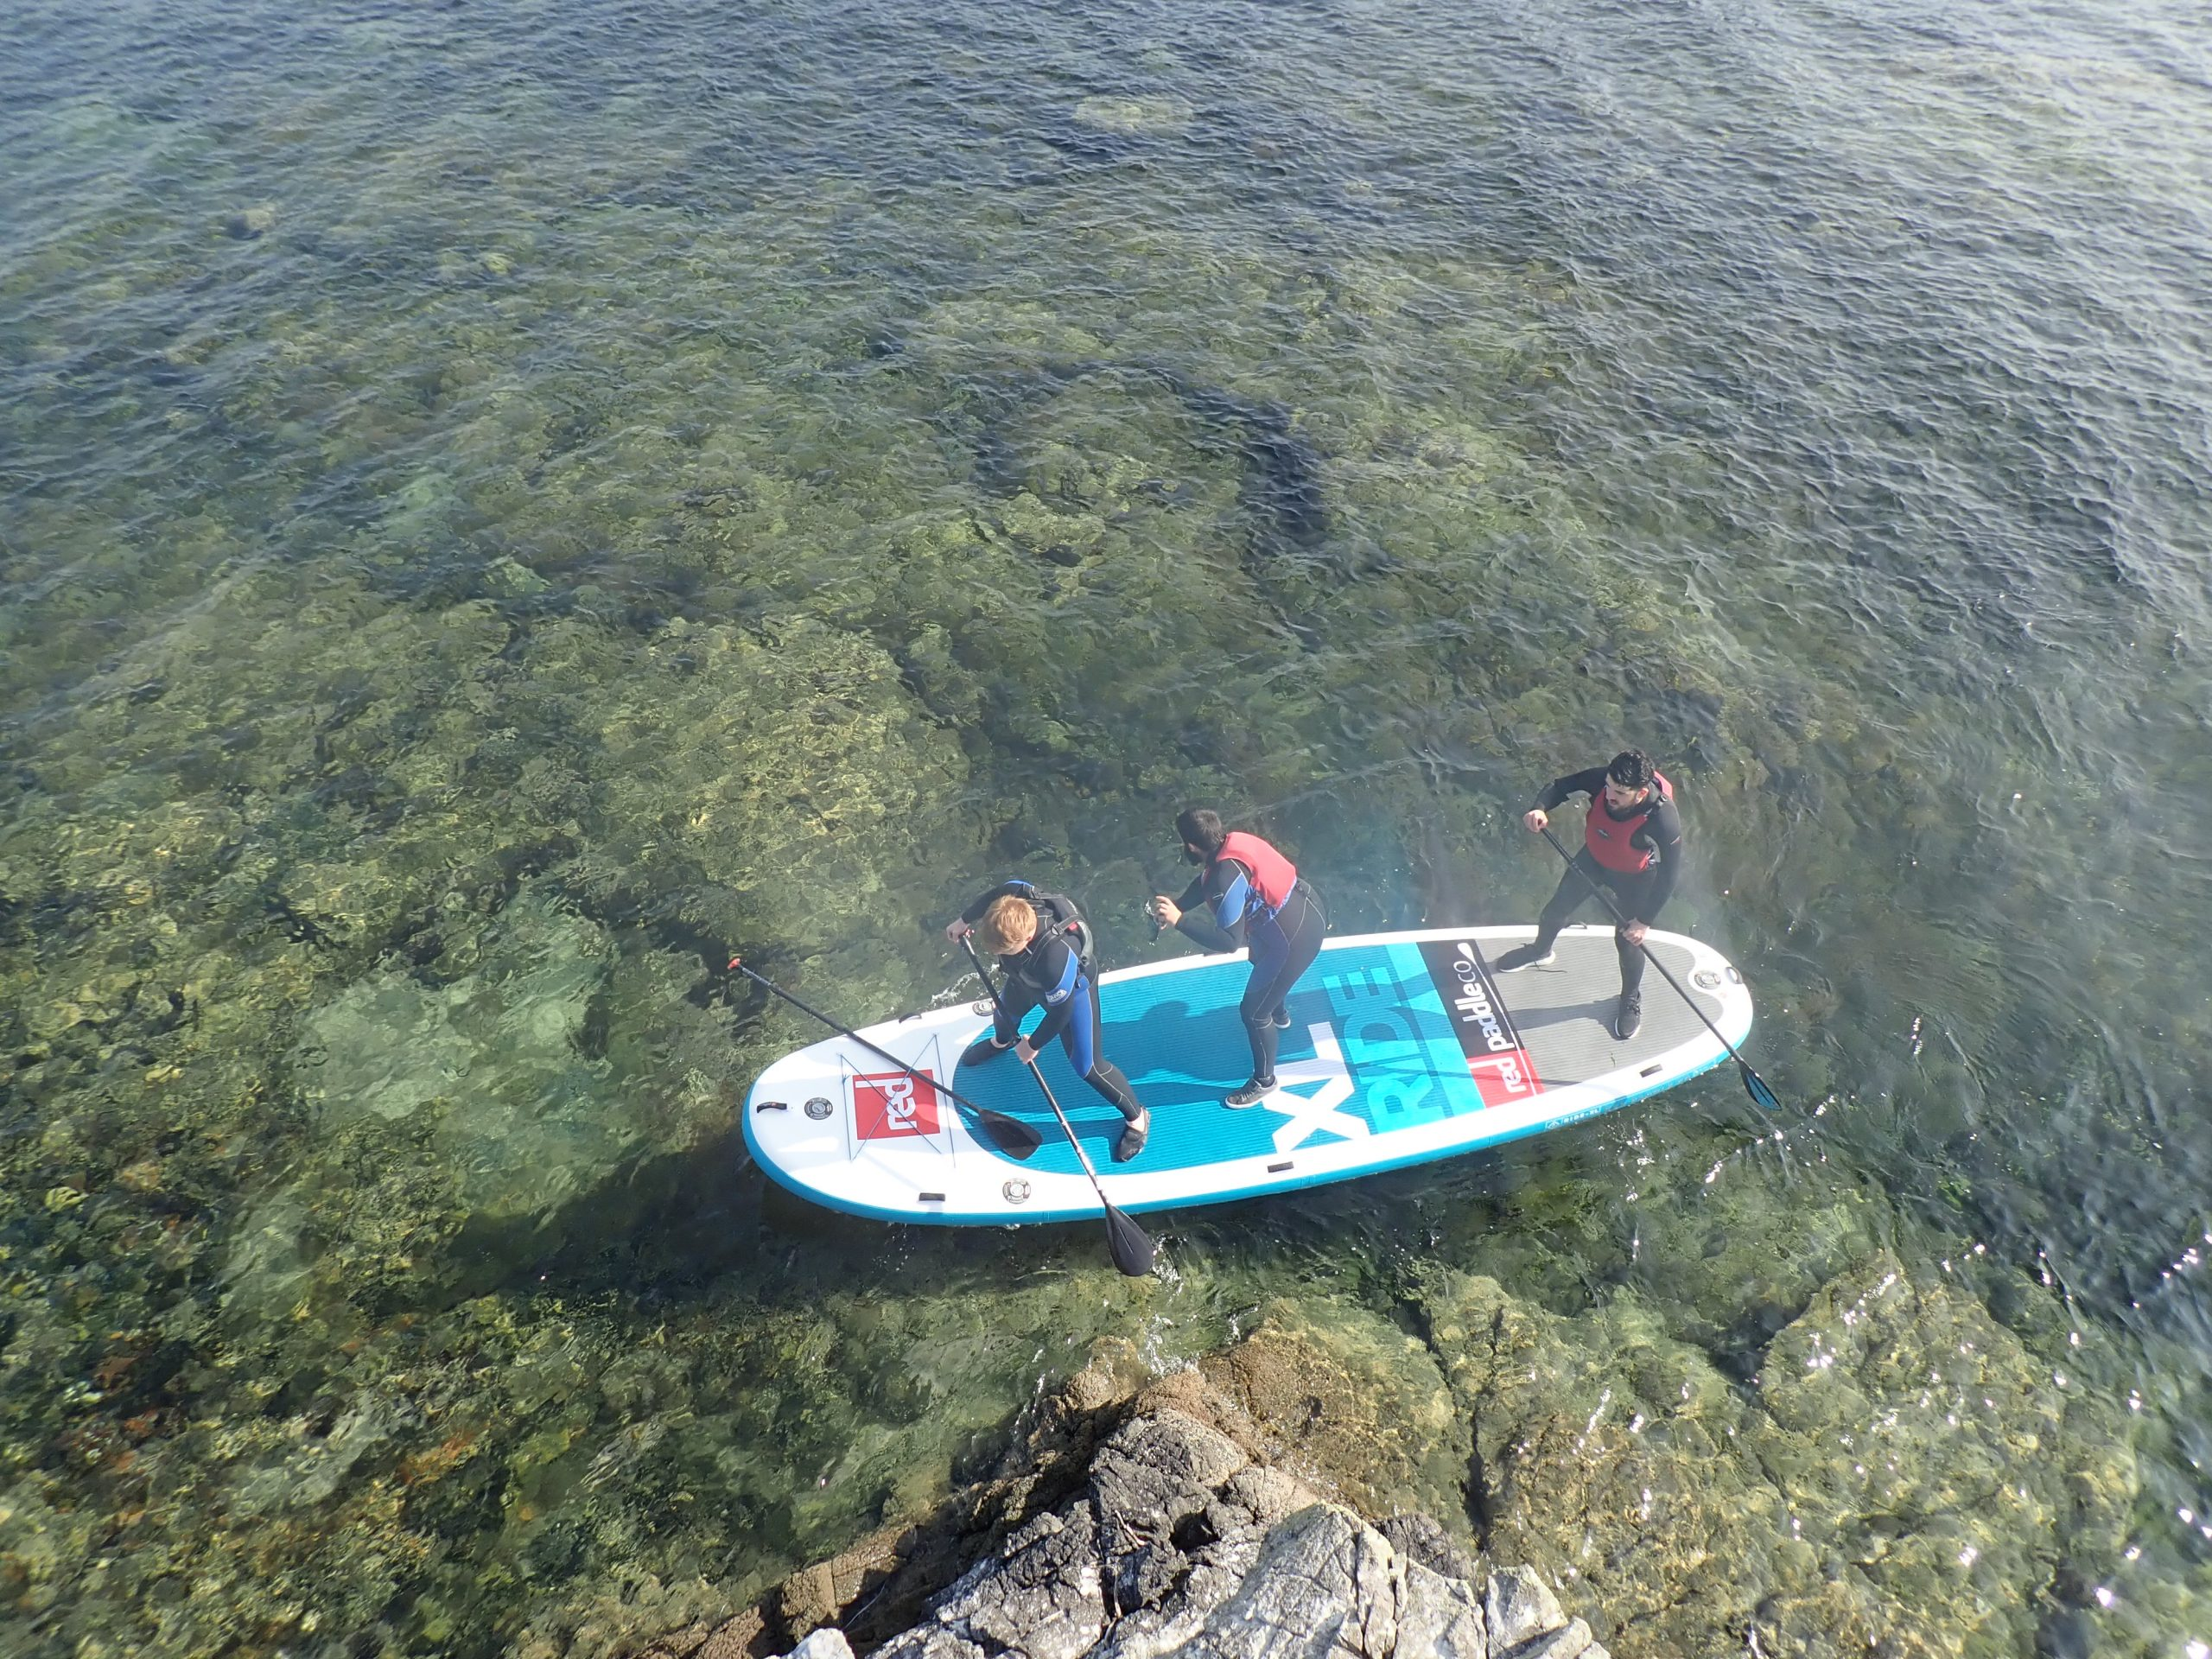 Giant Stand Up Paddle Boarding | 2hrs | 6yrs+ | Ayrshire, South West Scotland